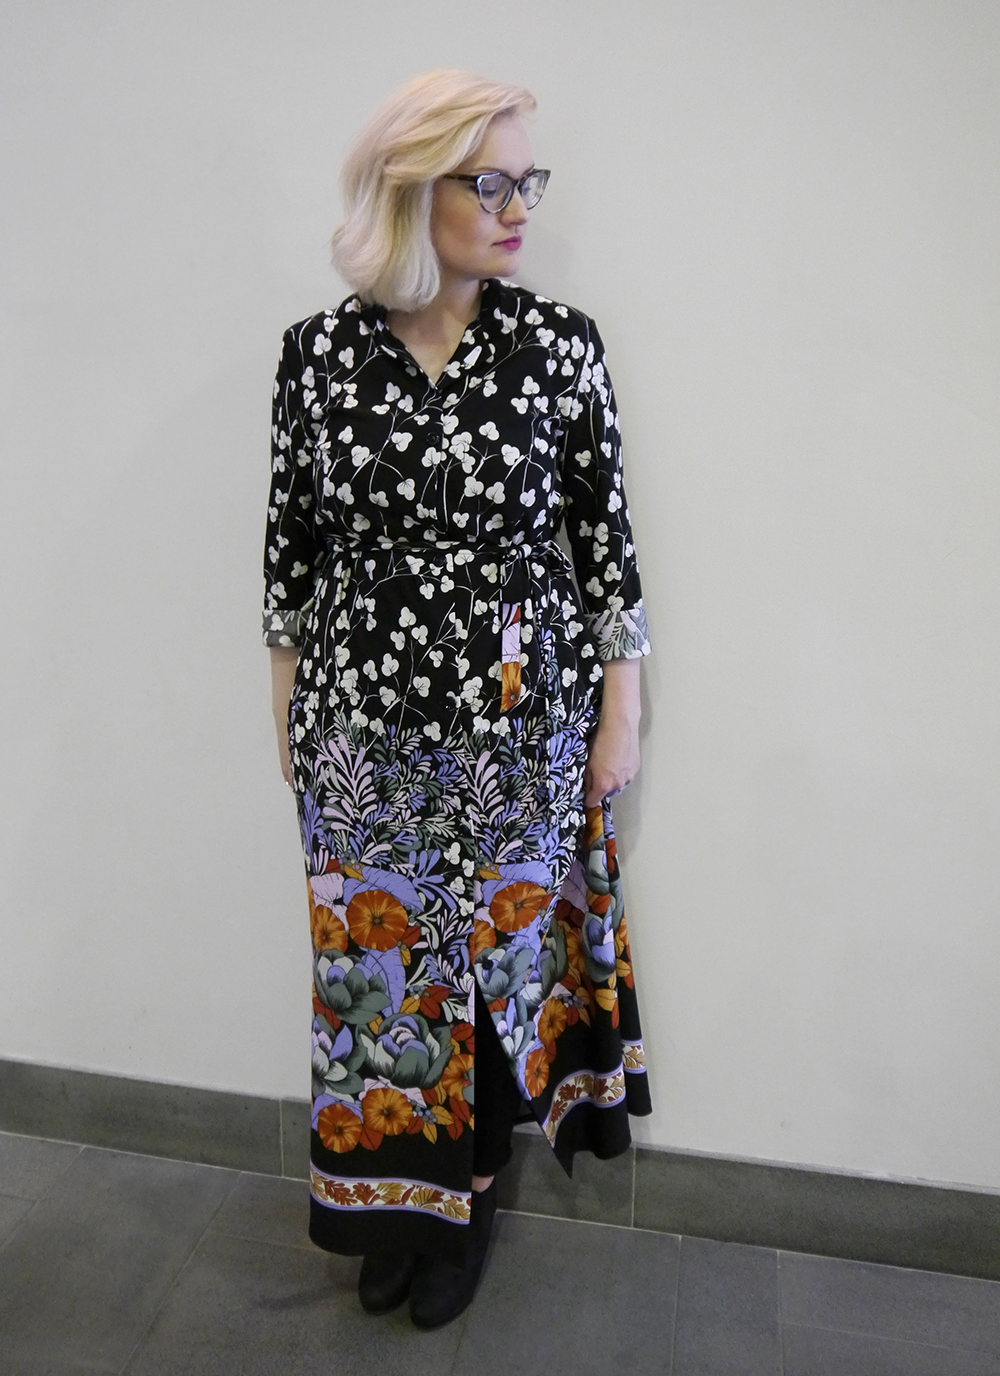 Glass Onion Vintage, floral maxi shirt dress, vintage style, The McManus Gallery, Dundee style blogger, Scottish fashion blog, IOLLA Muir frames